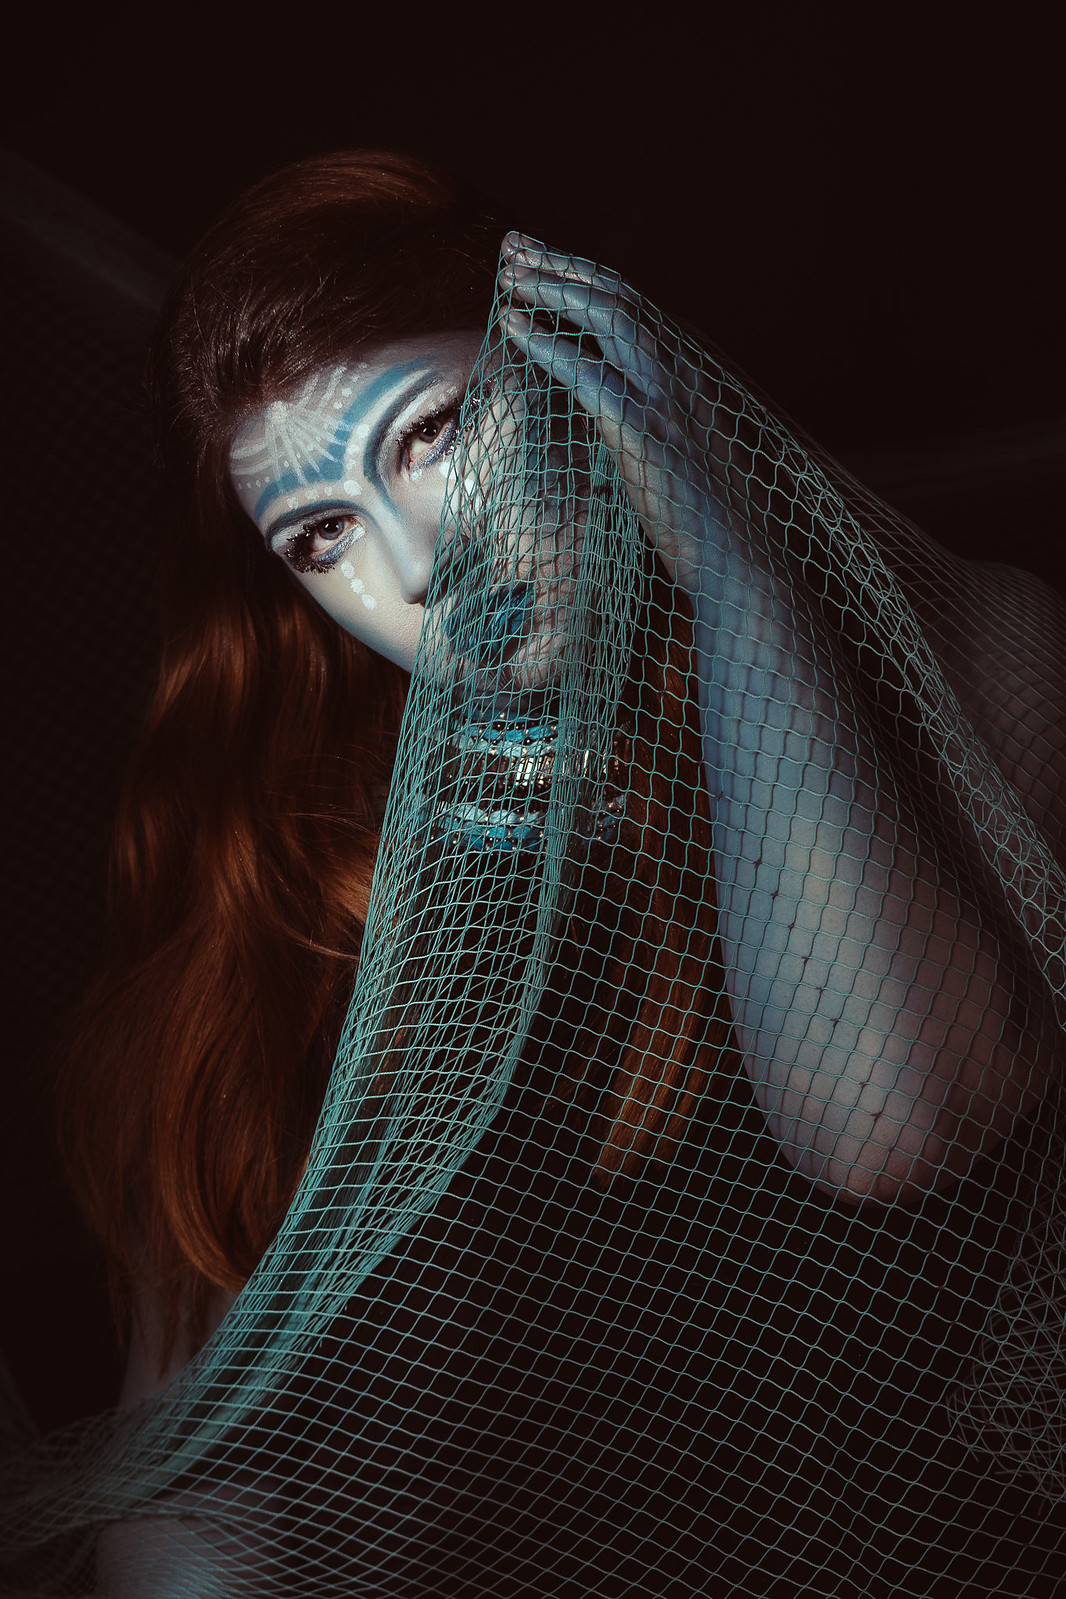 In the web / Creative self-portrait / MUAH by me